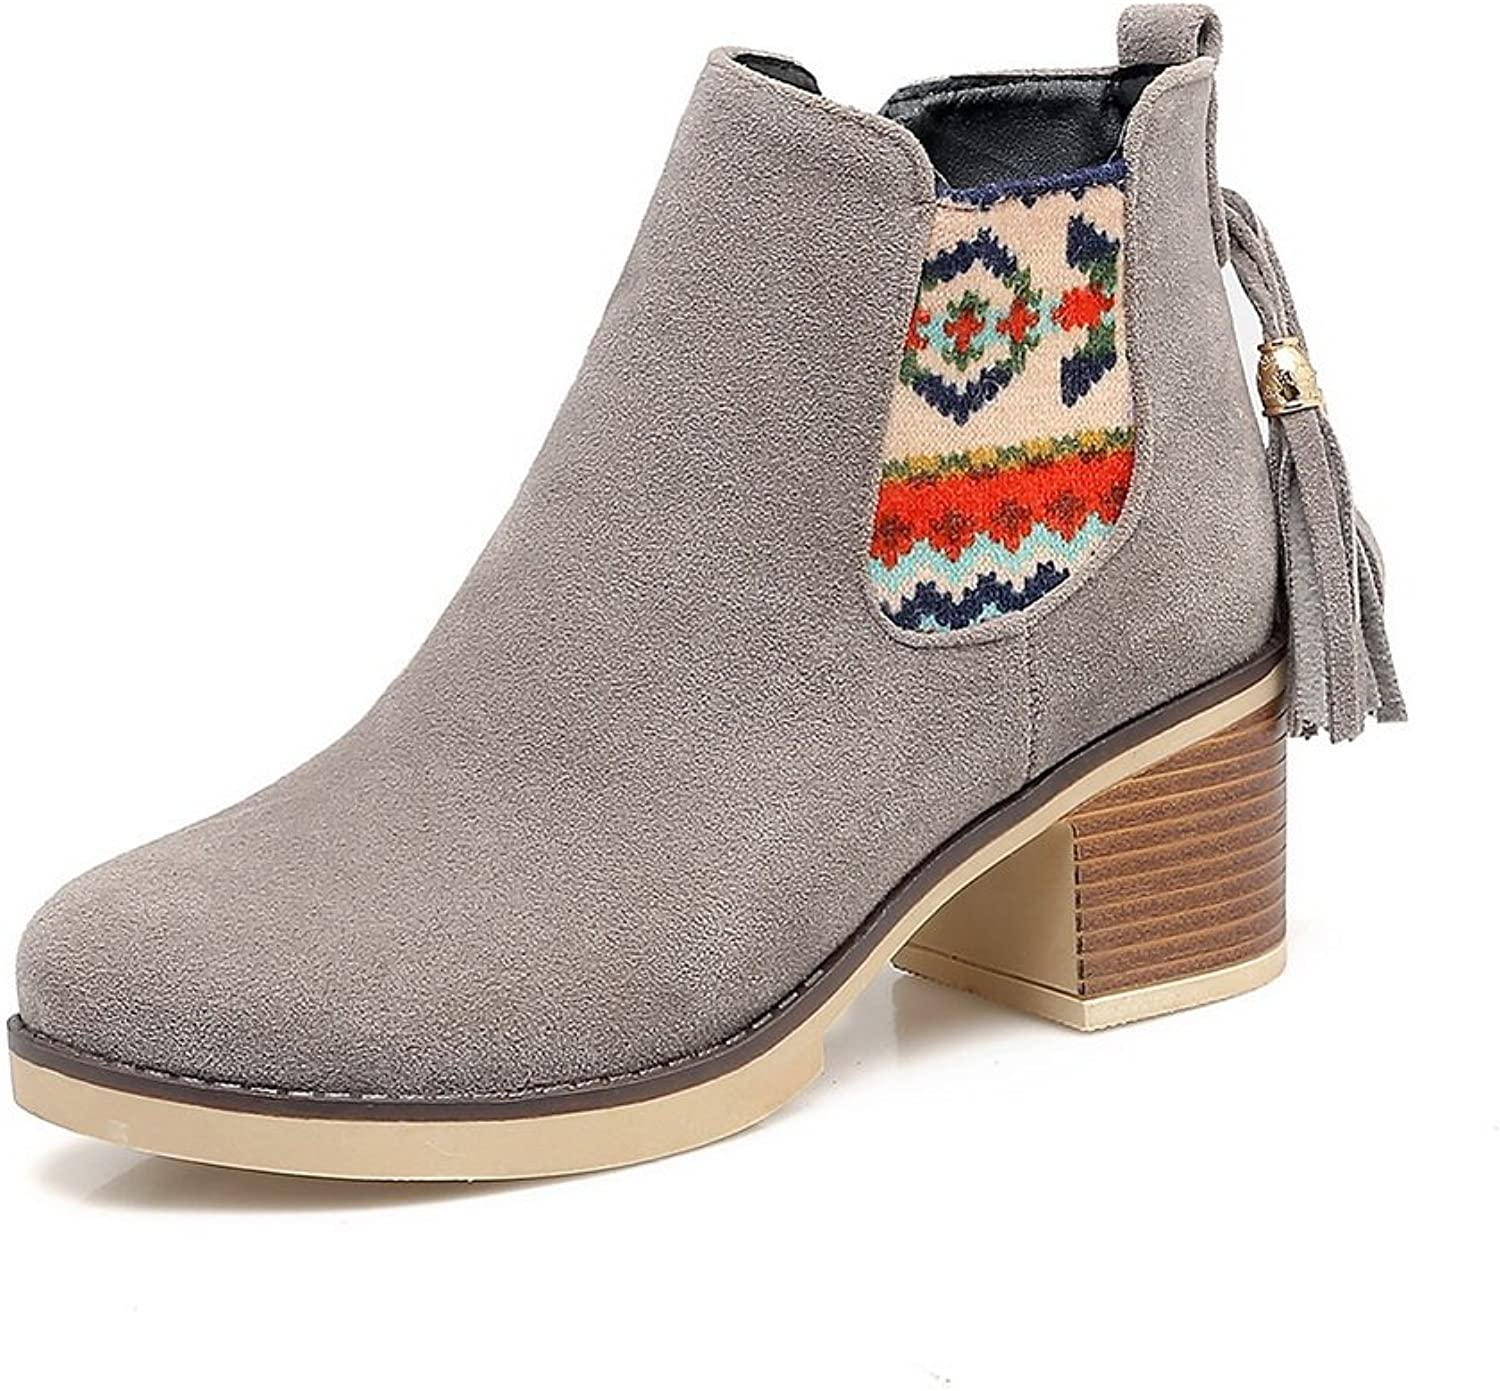 1TO9 Womens Boots Closed-Toe Zip Low-Heel Embroidered Warm Lining Rubber Water_Resistant Road Manmade Charms Round-Toe Urethane Boots MNS02604